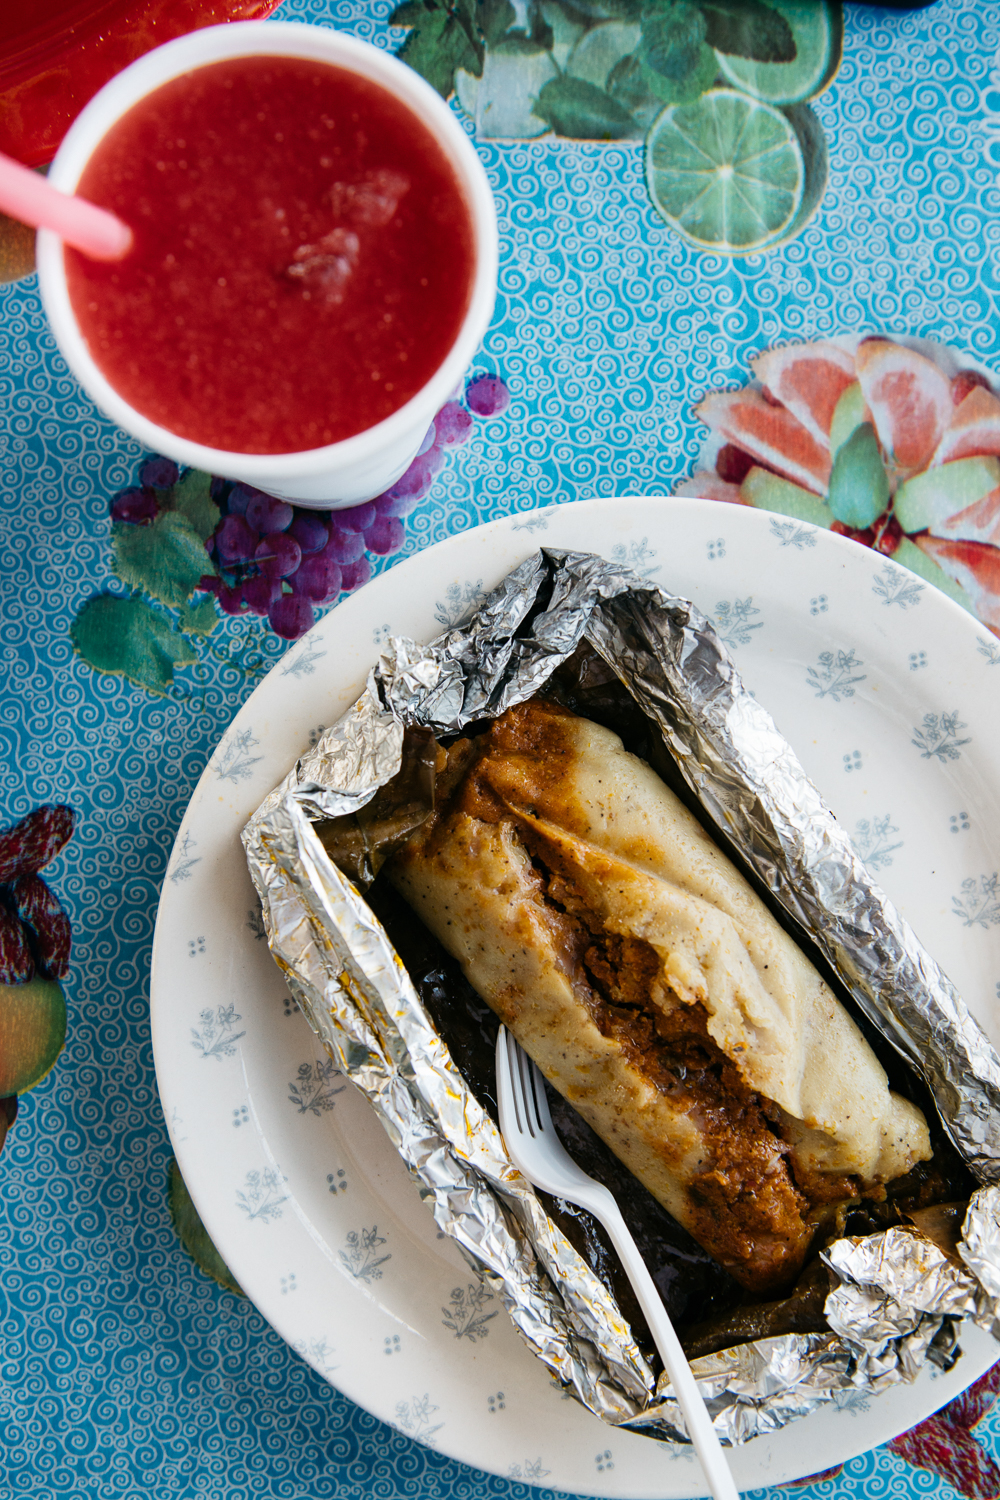 Belizean Tamale: masa that is stuffed with recado-spiced pork or chicken and steamed inside a banana leaf